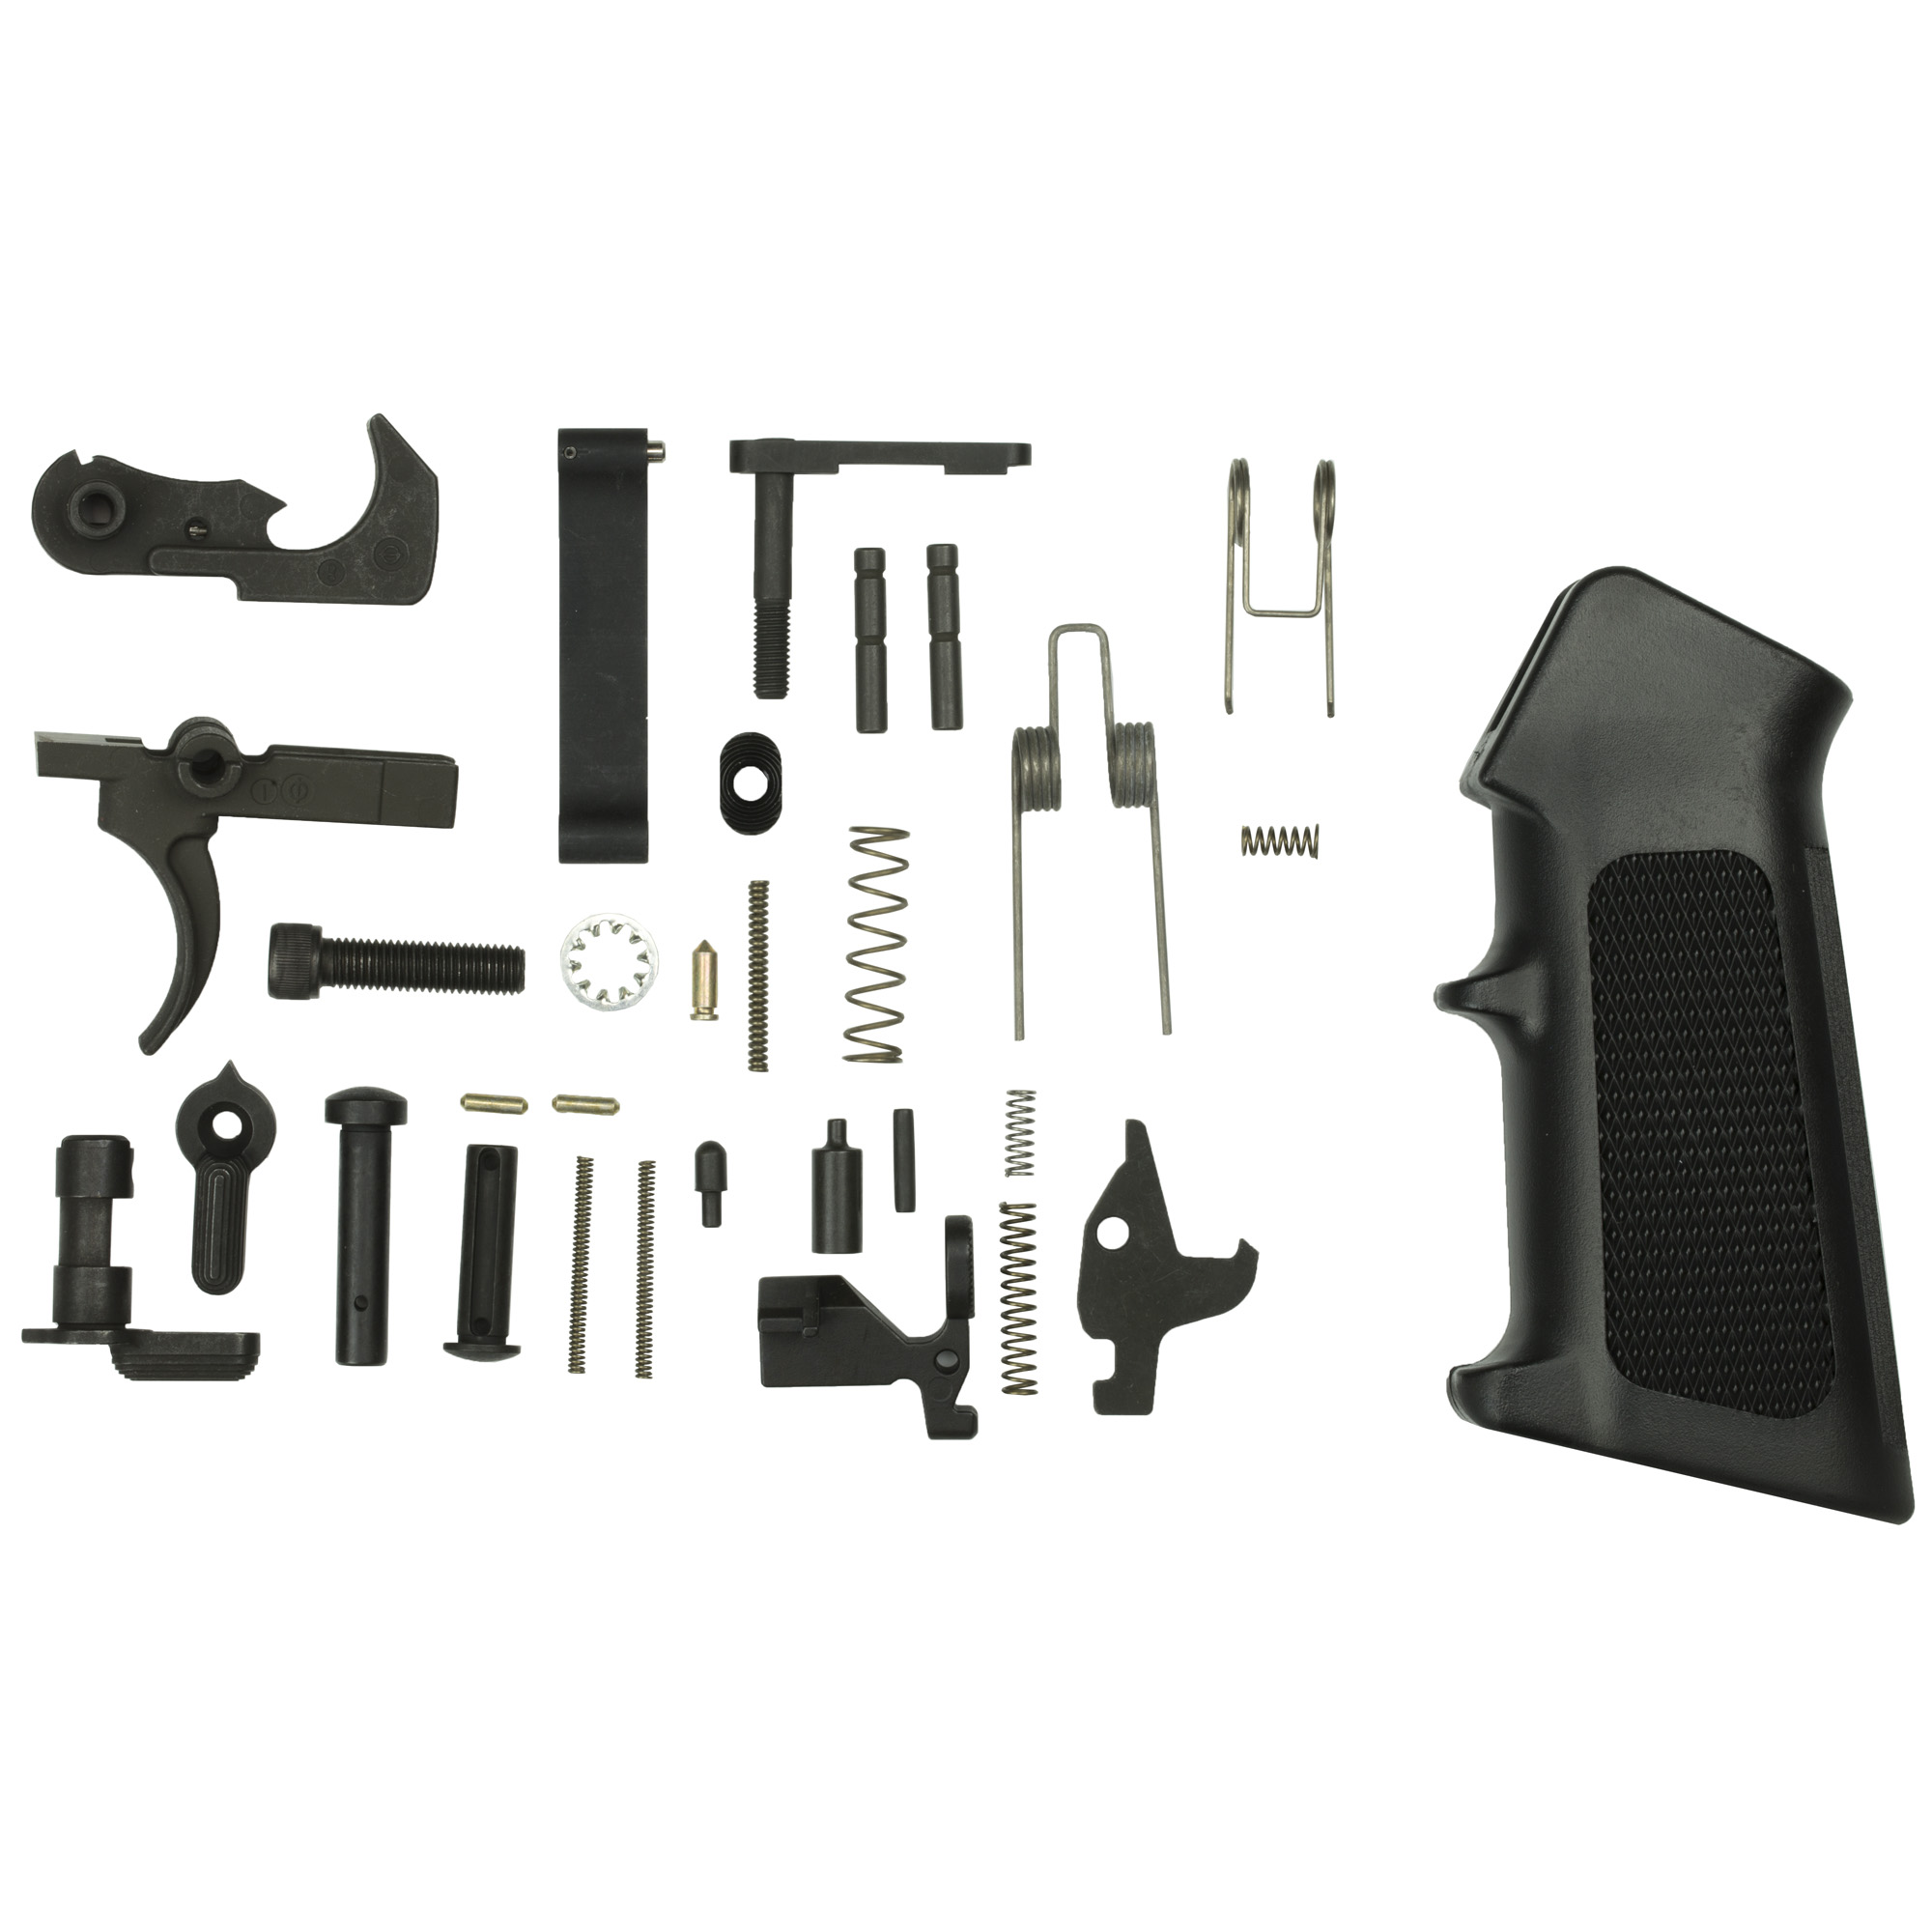 All the parts you need to get started on your next AR15 build. Combine this kit with a buttstock kit to complete your lower group. Includes a CMMG Ambi Selector.